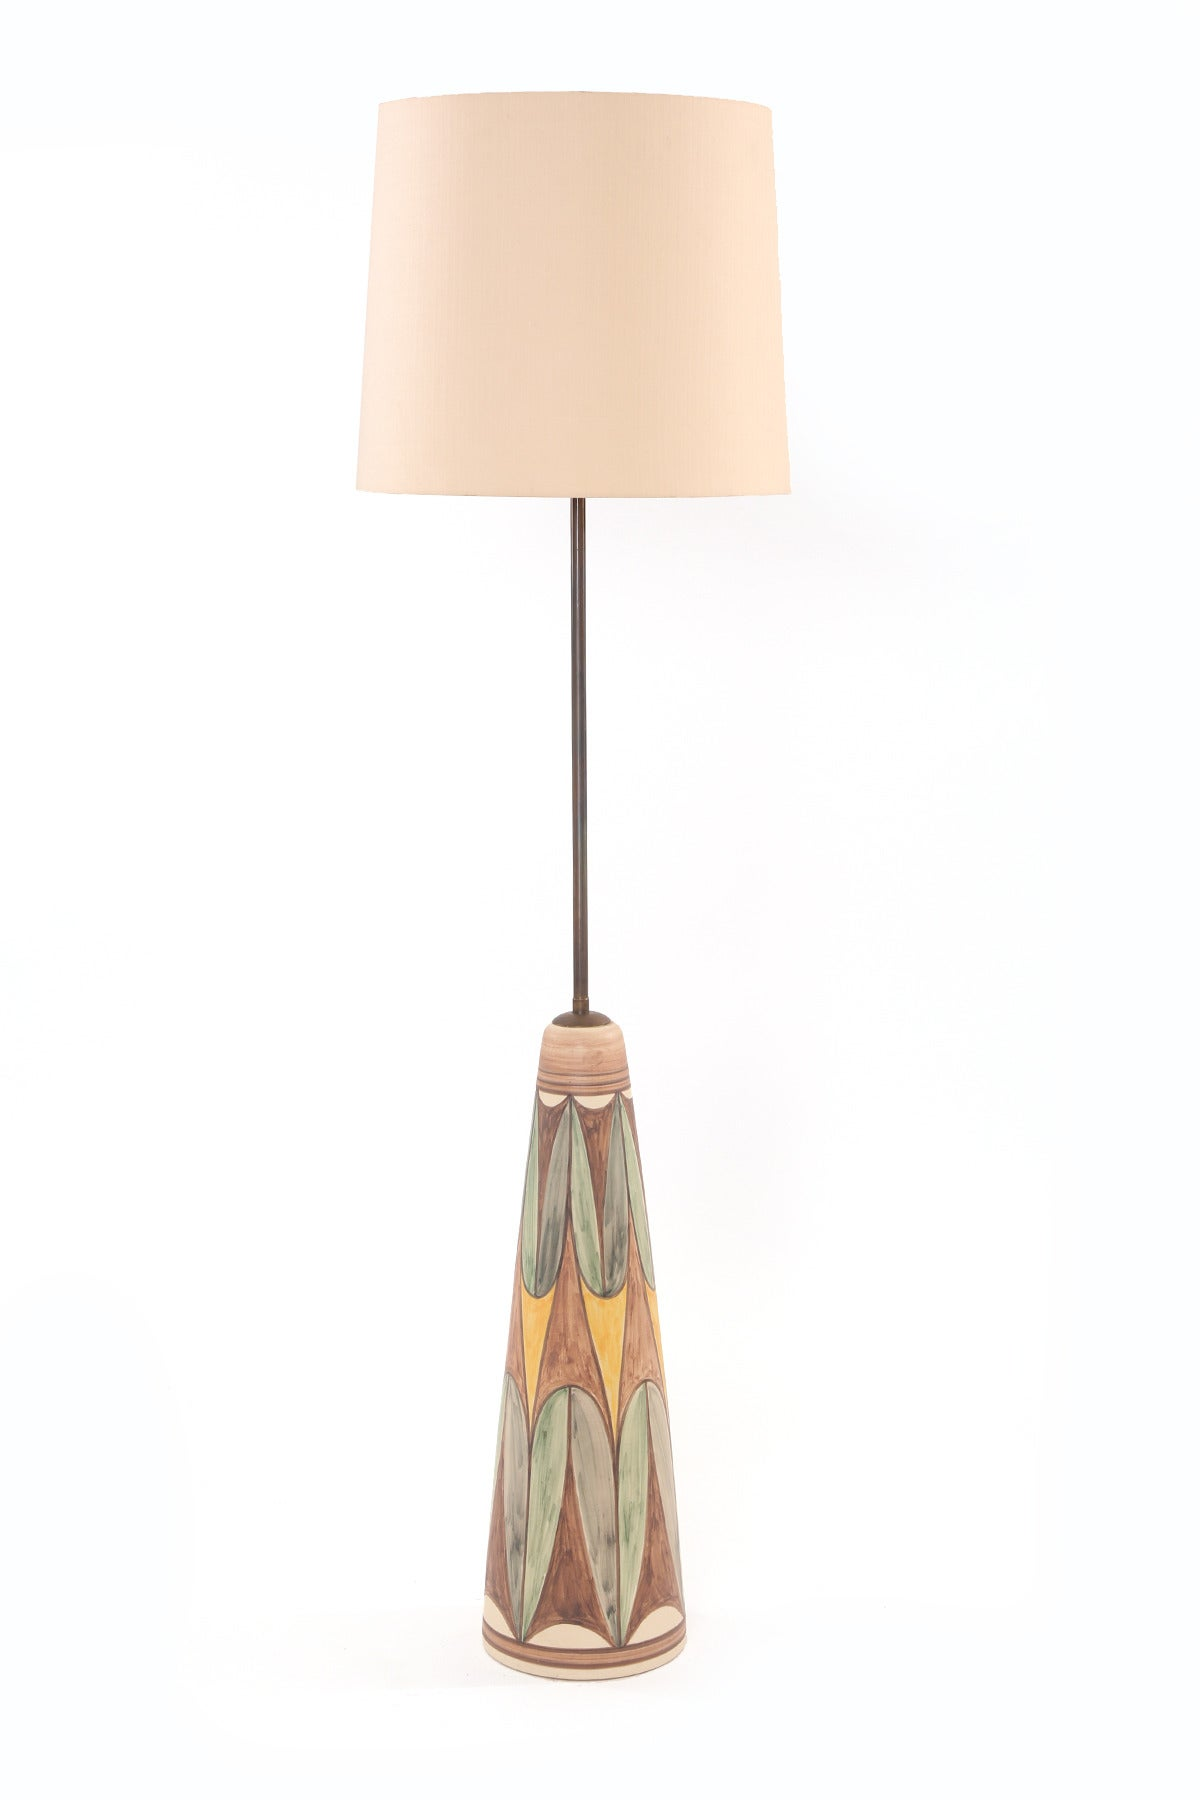 Rare Ceramic And Brass Floor Lamp By Soholm At 1stdibs